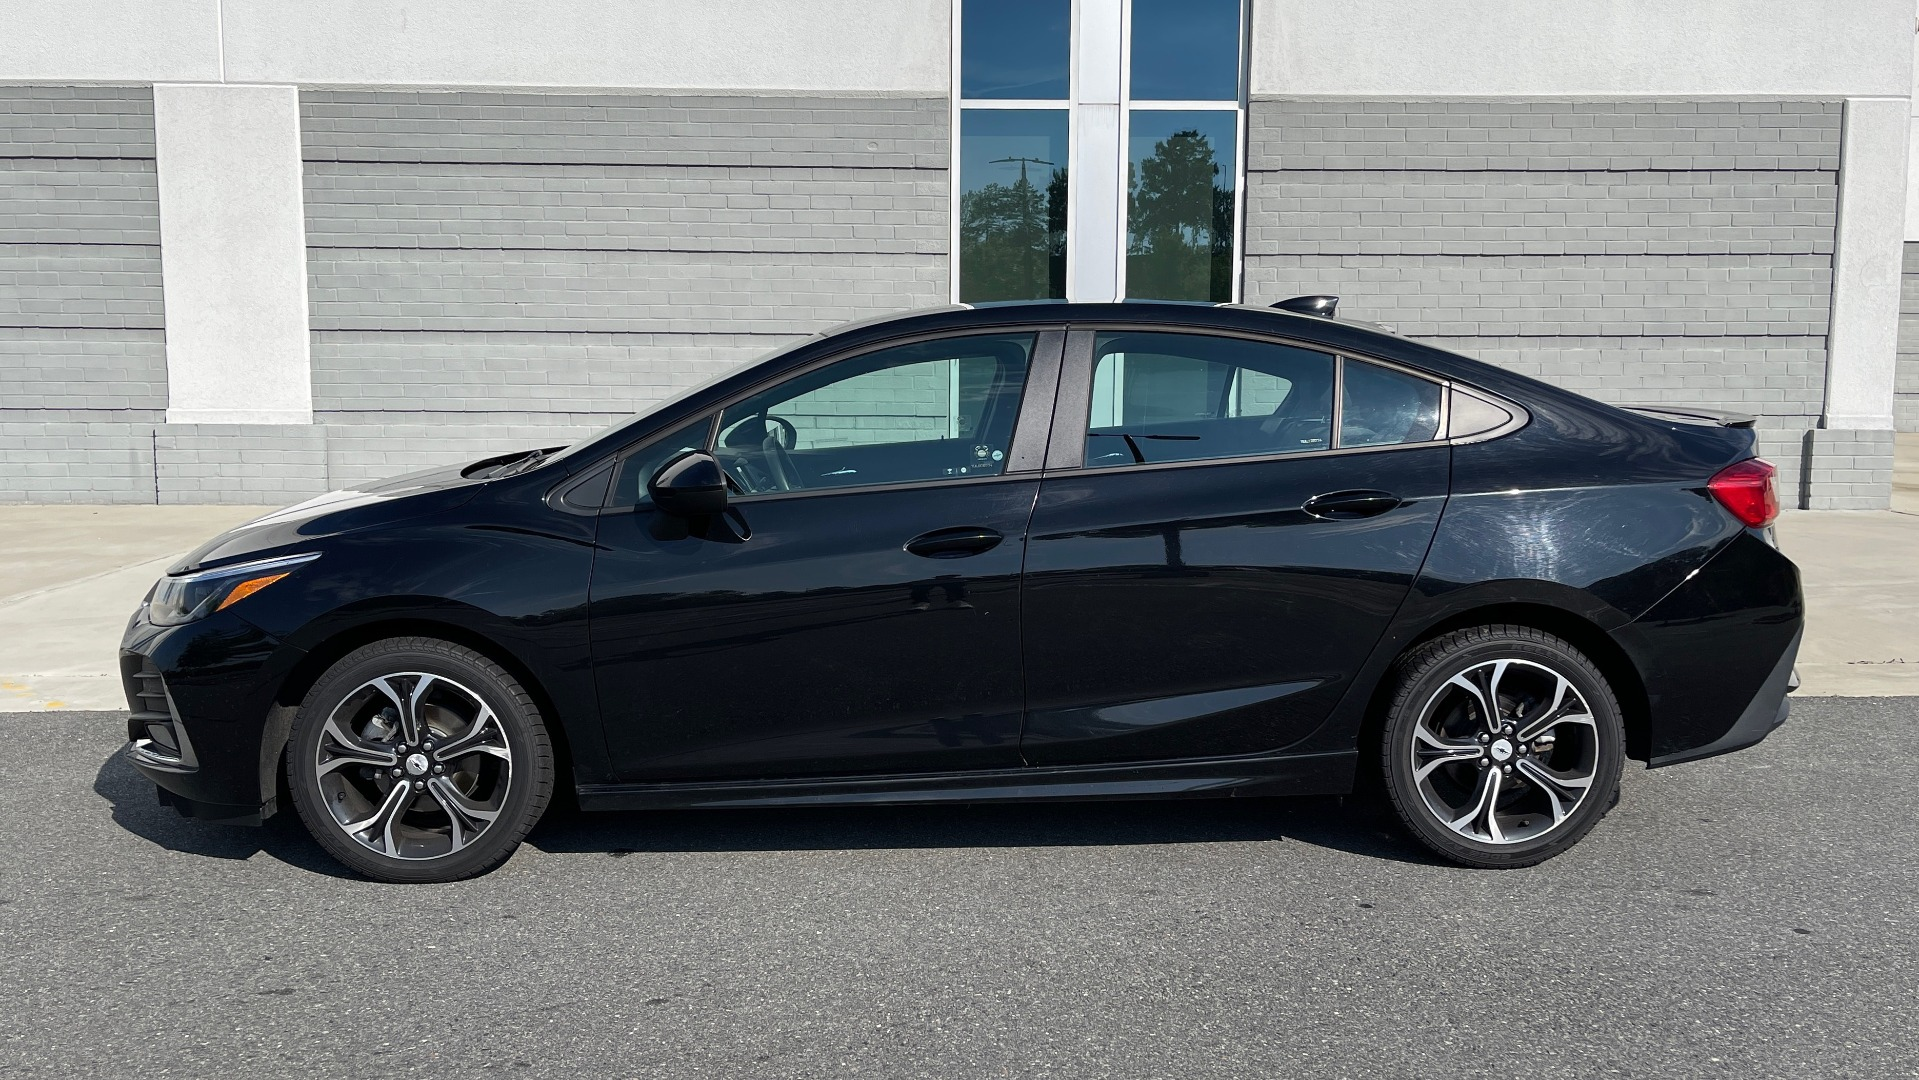 Used 2019 Chevrolet CRUZE LT / 1.4L TURBO / 6-SPD AUTO / AIR CONDITIONING / REARVIEW for sale $18,495 at Formula Imports in Charlotte NC 28227 3